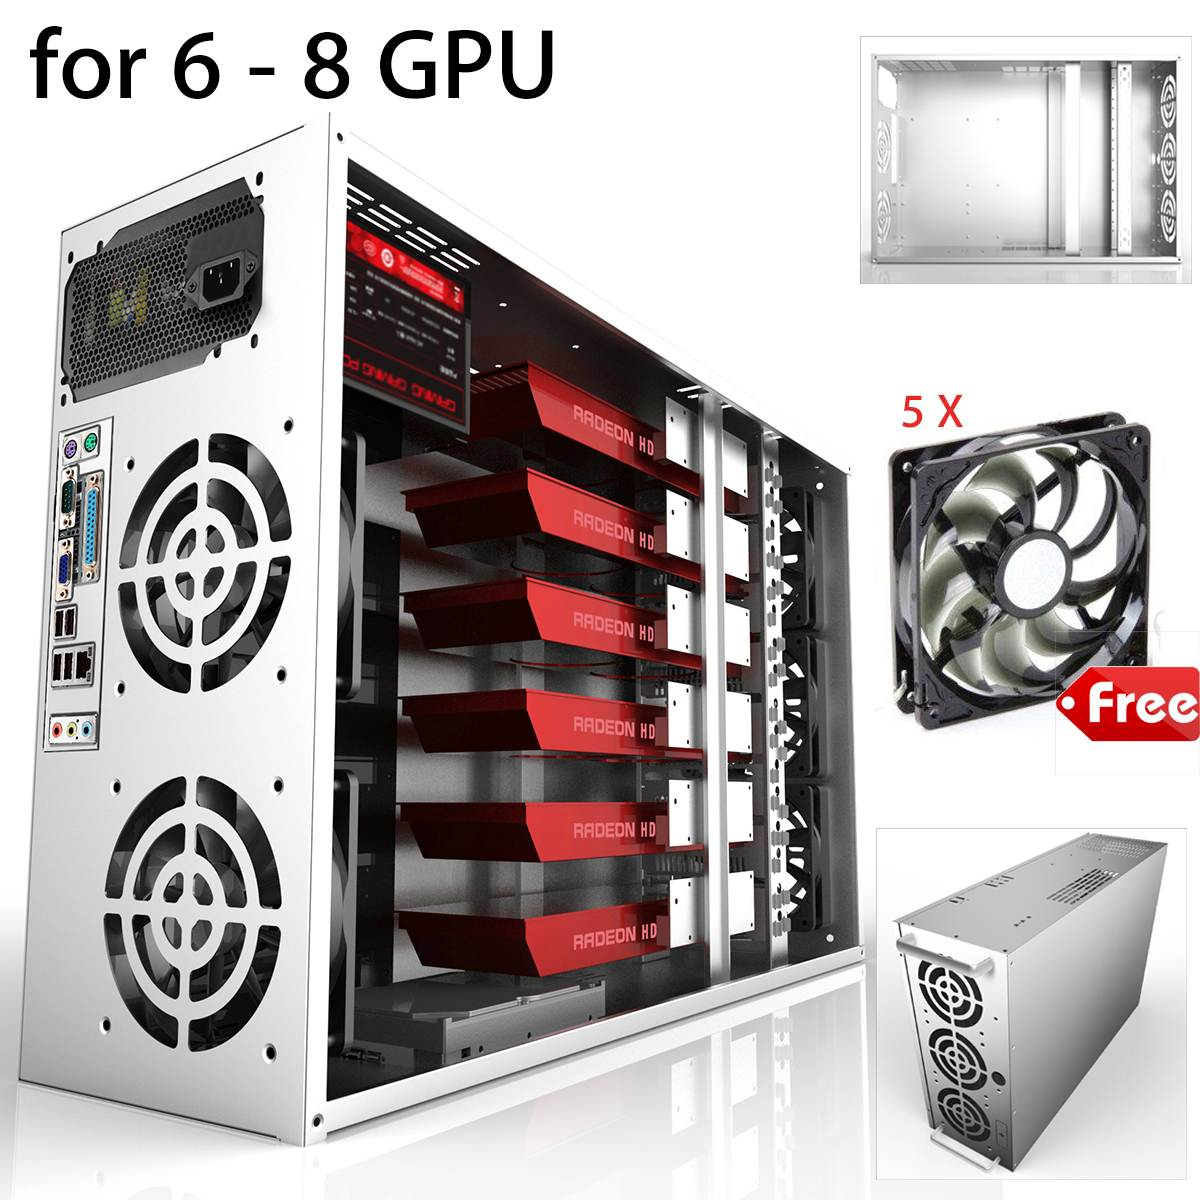 Crypto Coin Open Air Mining Frame Rig Graphics Case For 6-8 GPU ETH BTC + 5 Fans